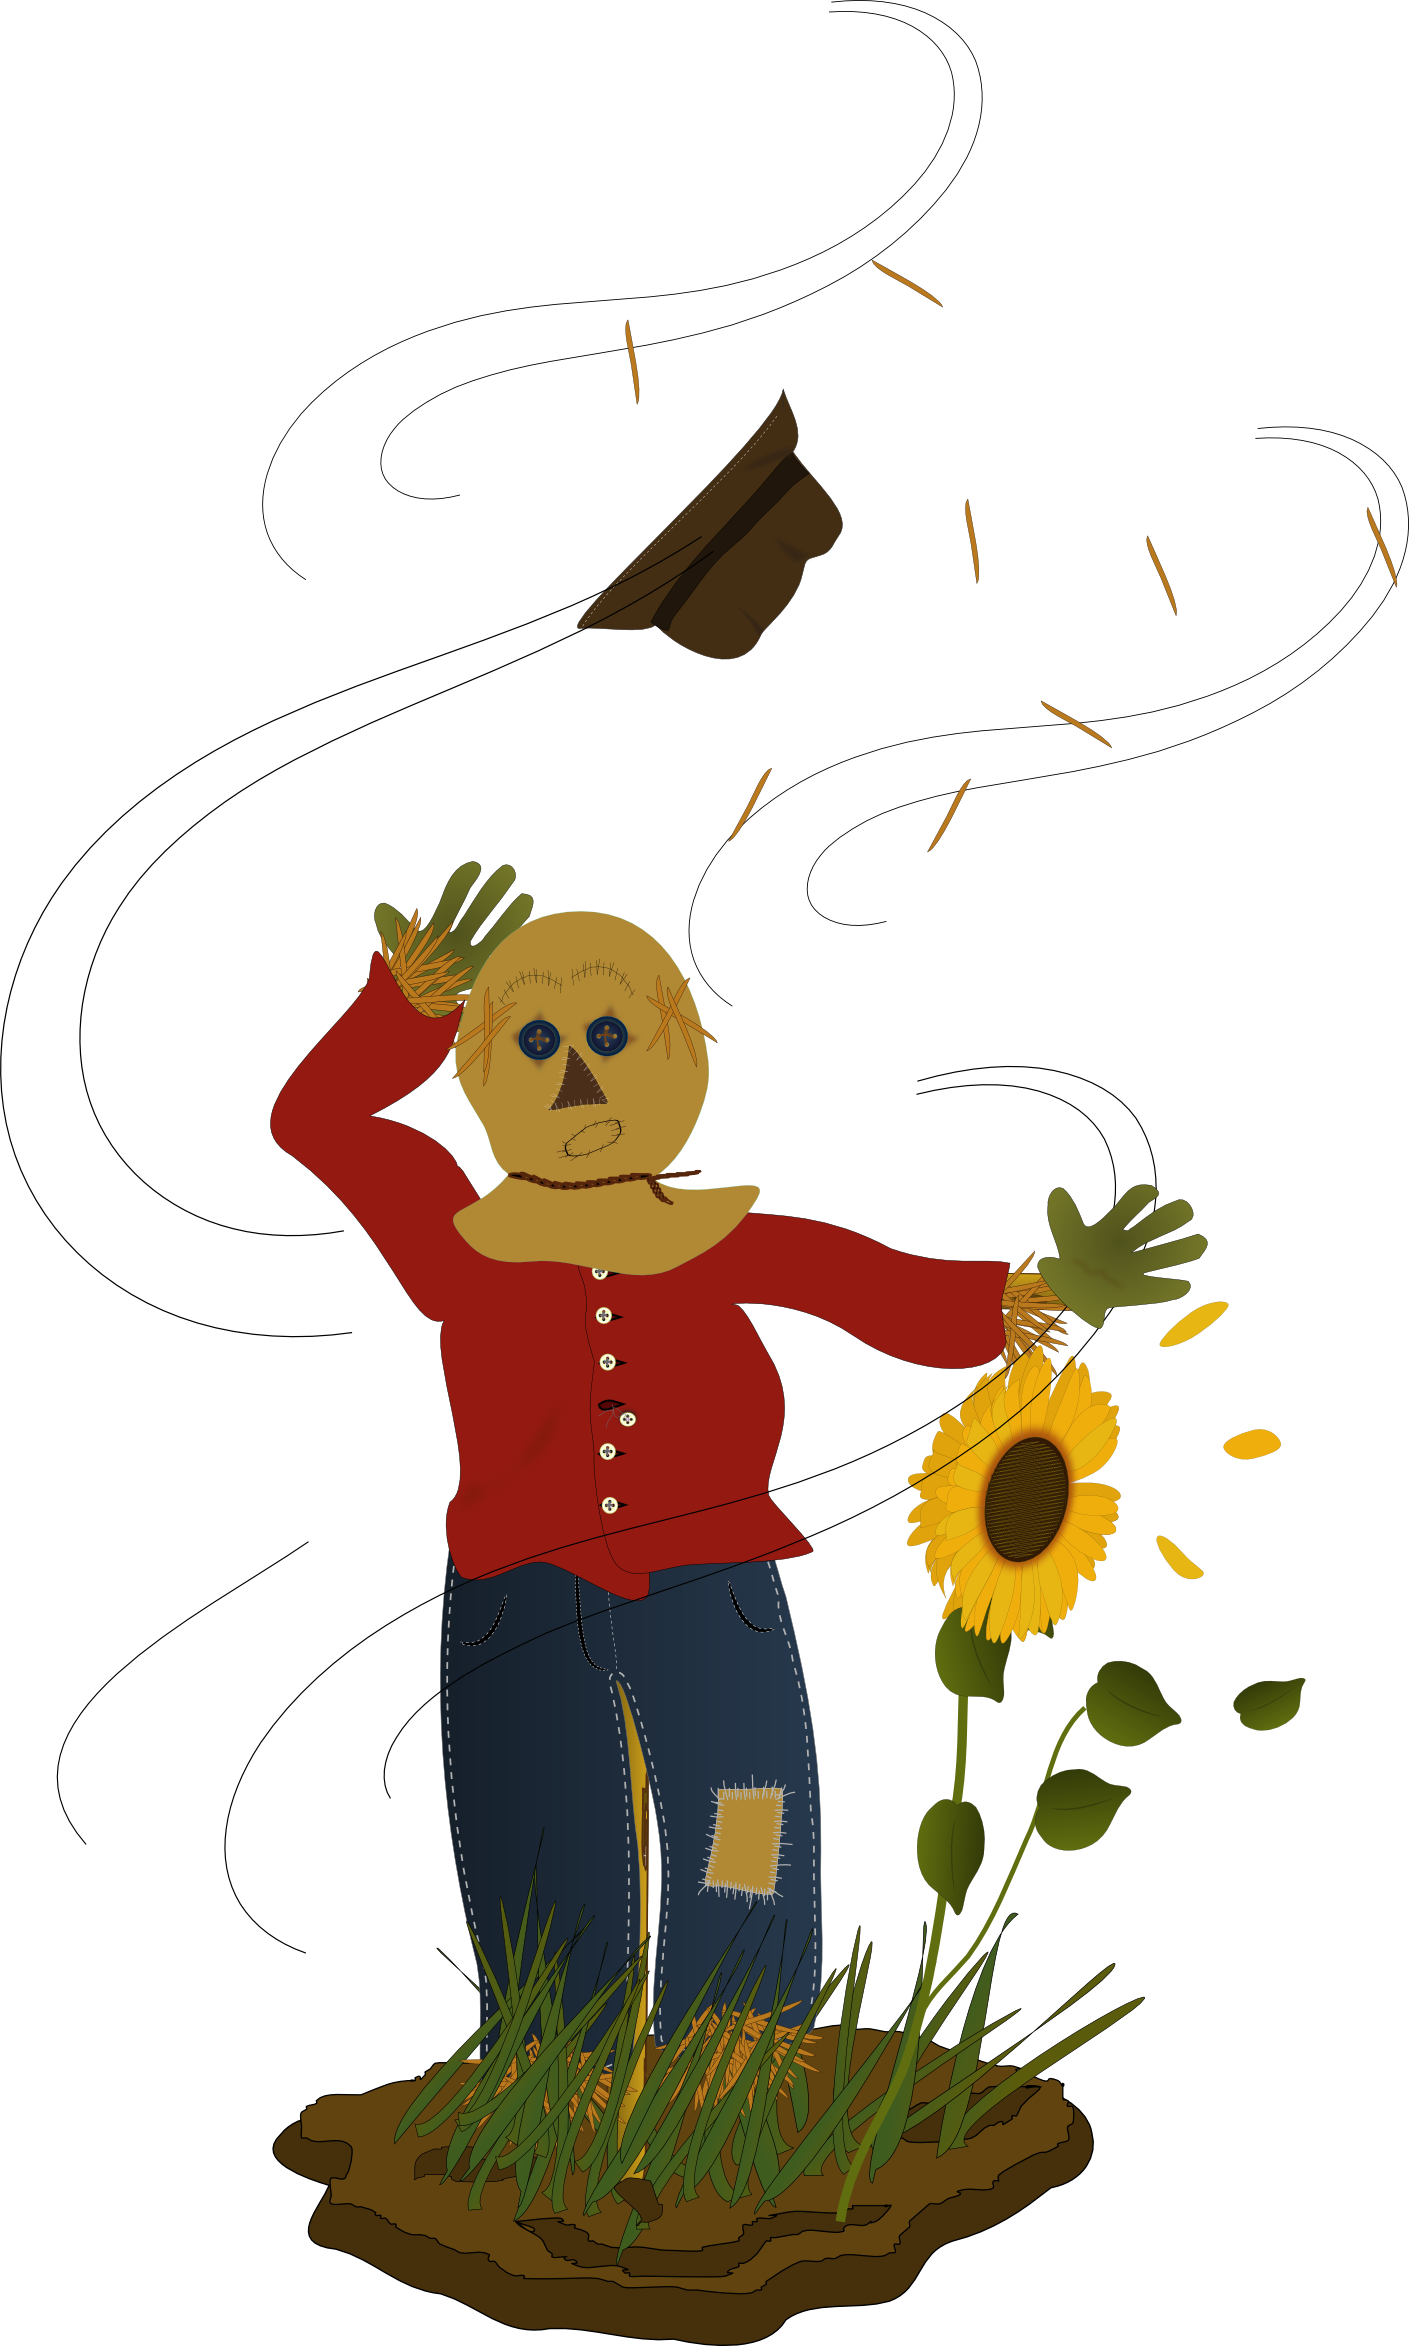 Inkscape illustration of scarecrow with hat blowing in the wind